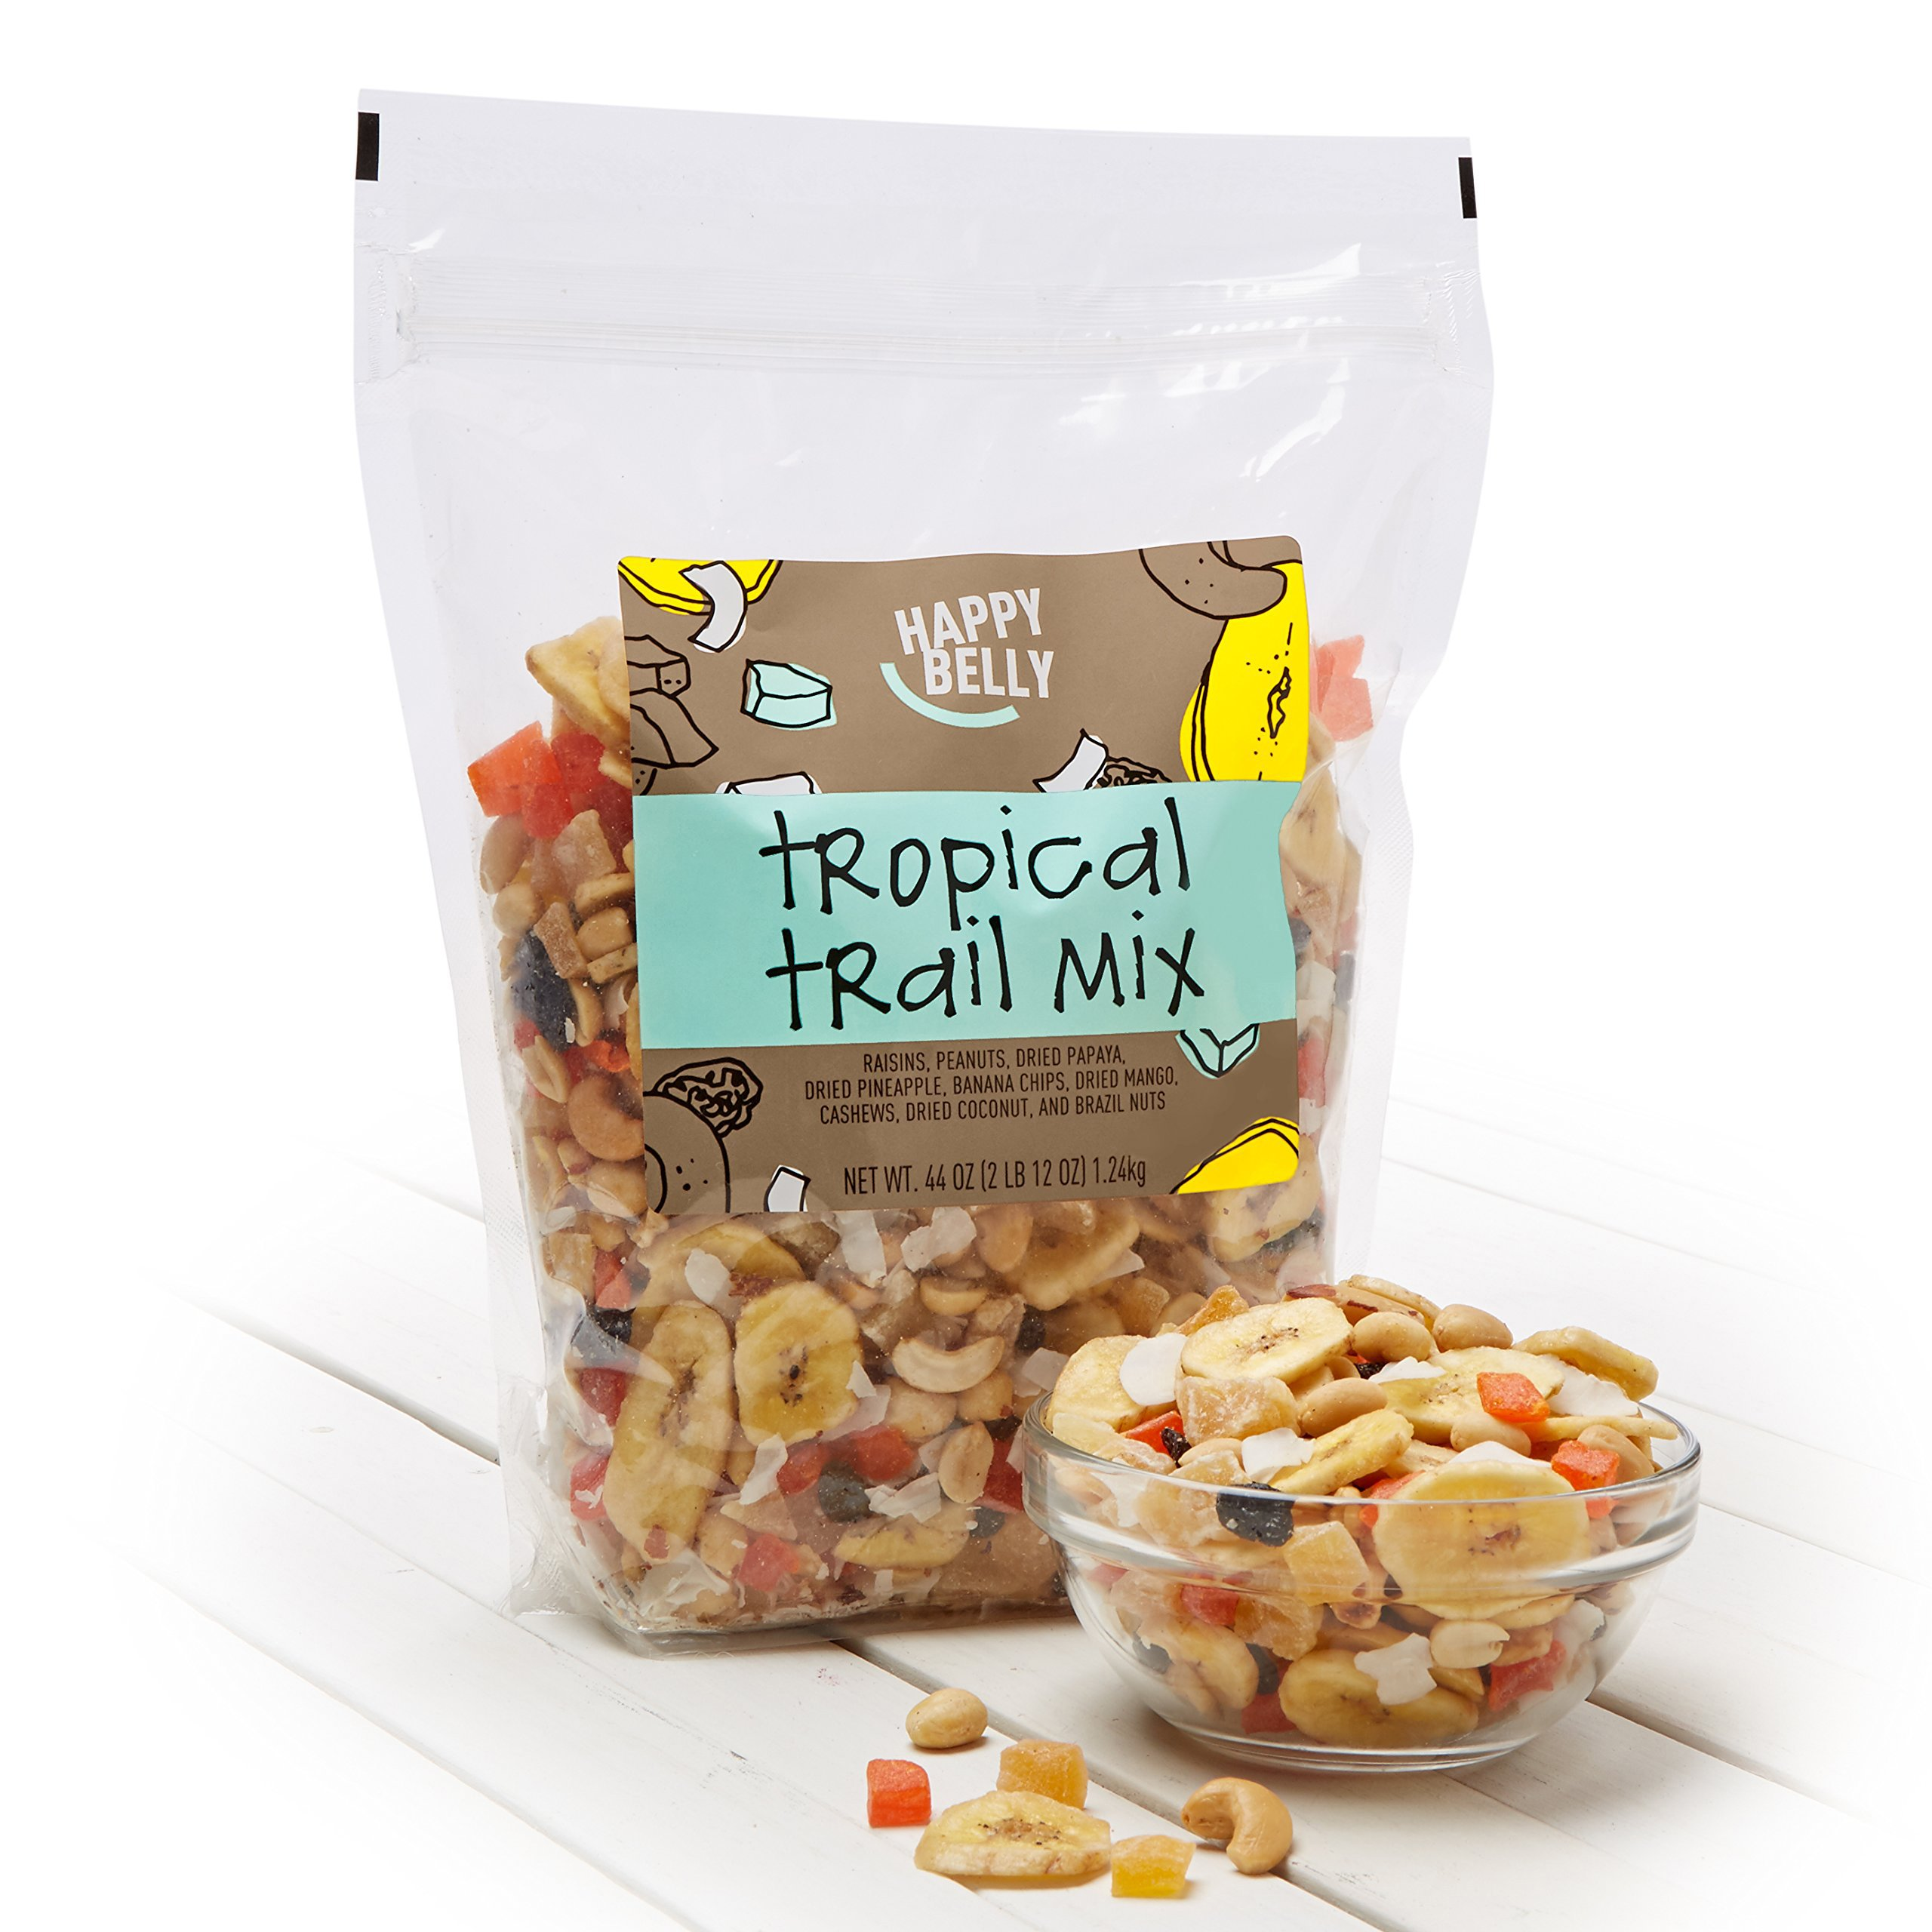 Amazon Brand - Happy Belly Amazon Brand Tropical Trail Mix, 44 ounce by Happy Belly (Image #2)